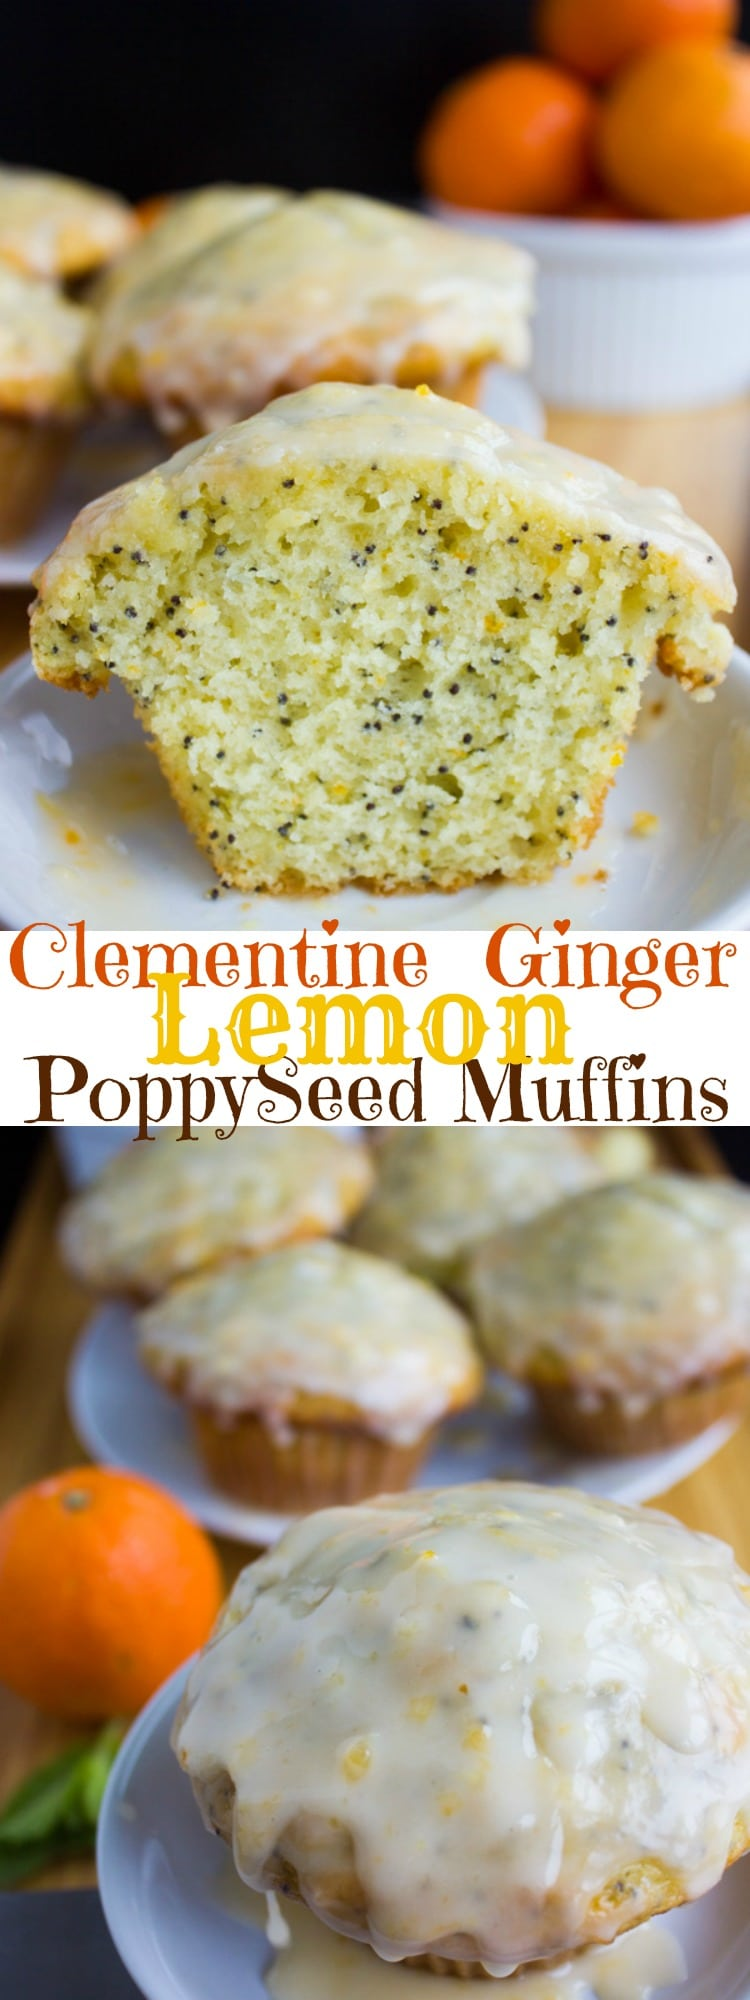 Clementine Ginger Lemon Poppy Seed Muffins | If you love Lemon Poppy Seed Muffins you got to try this seasonal twist with clementine zest, fresh ginger and a zesty and sweet clementine glaze! This easy one-bowl muffins recipe is the perfect breakfast on a cold winter morning.#brunch, #breakfast, #muffins, #lemonpoppyseed, #baking, #easy